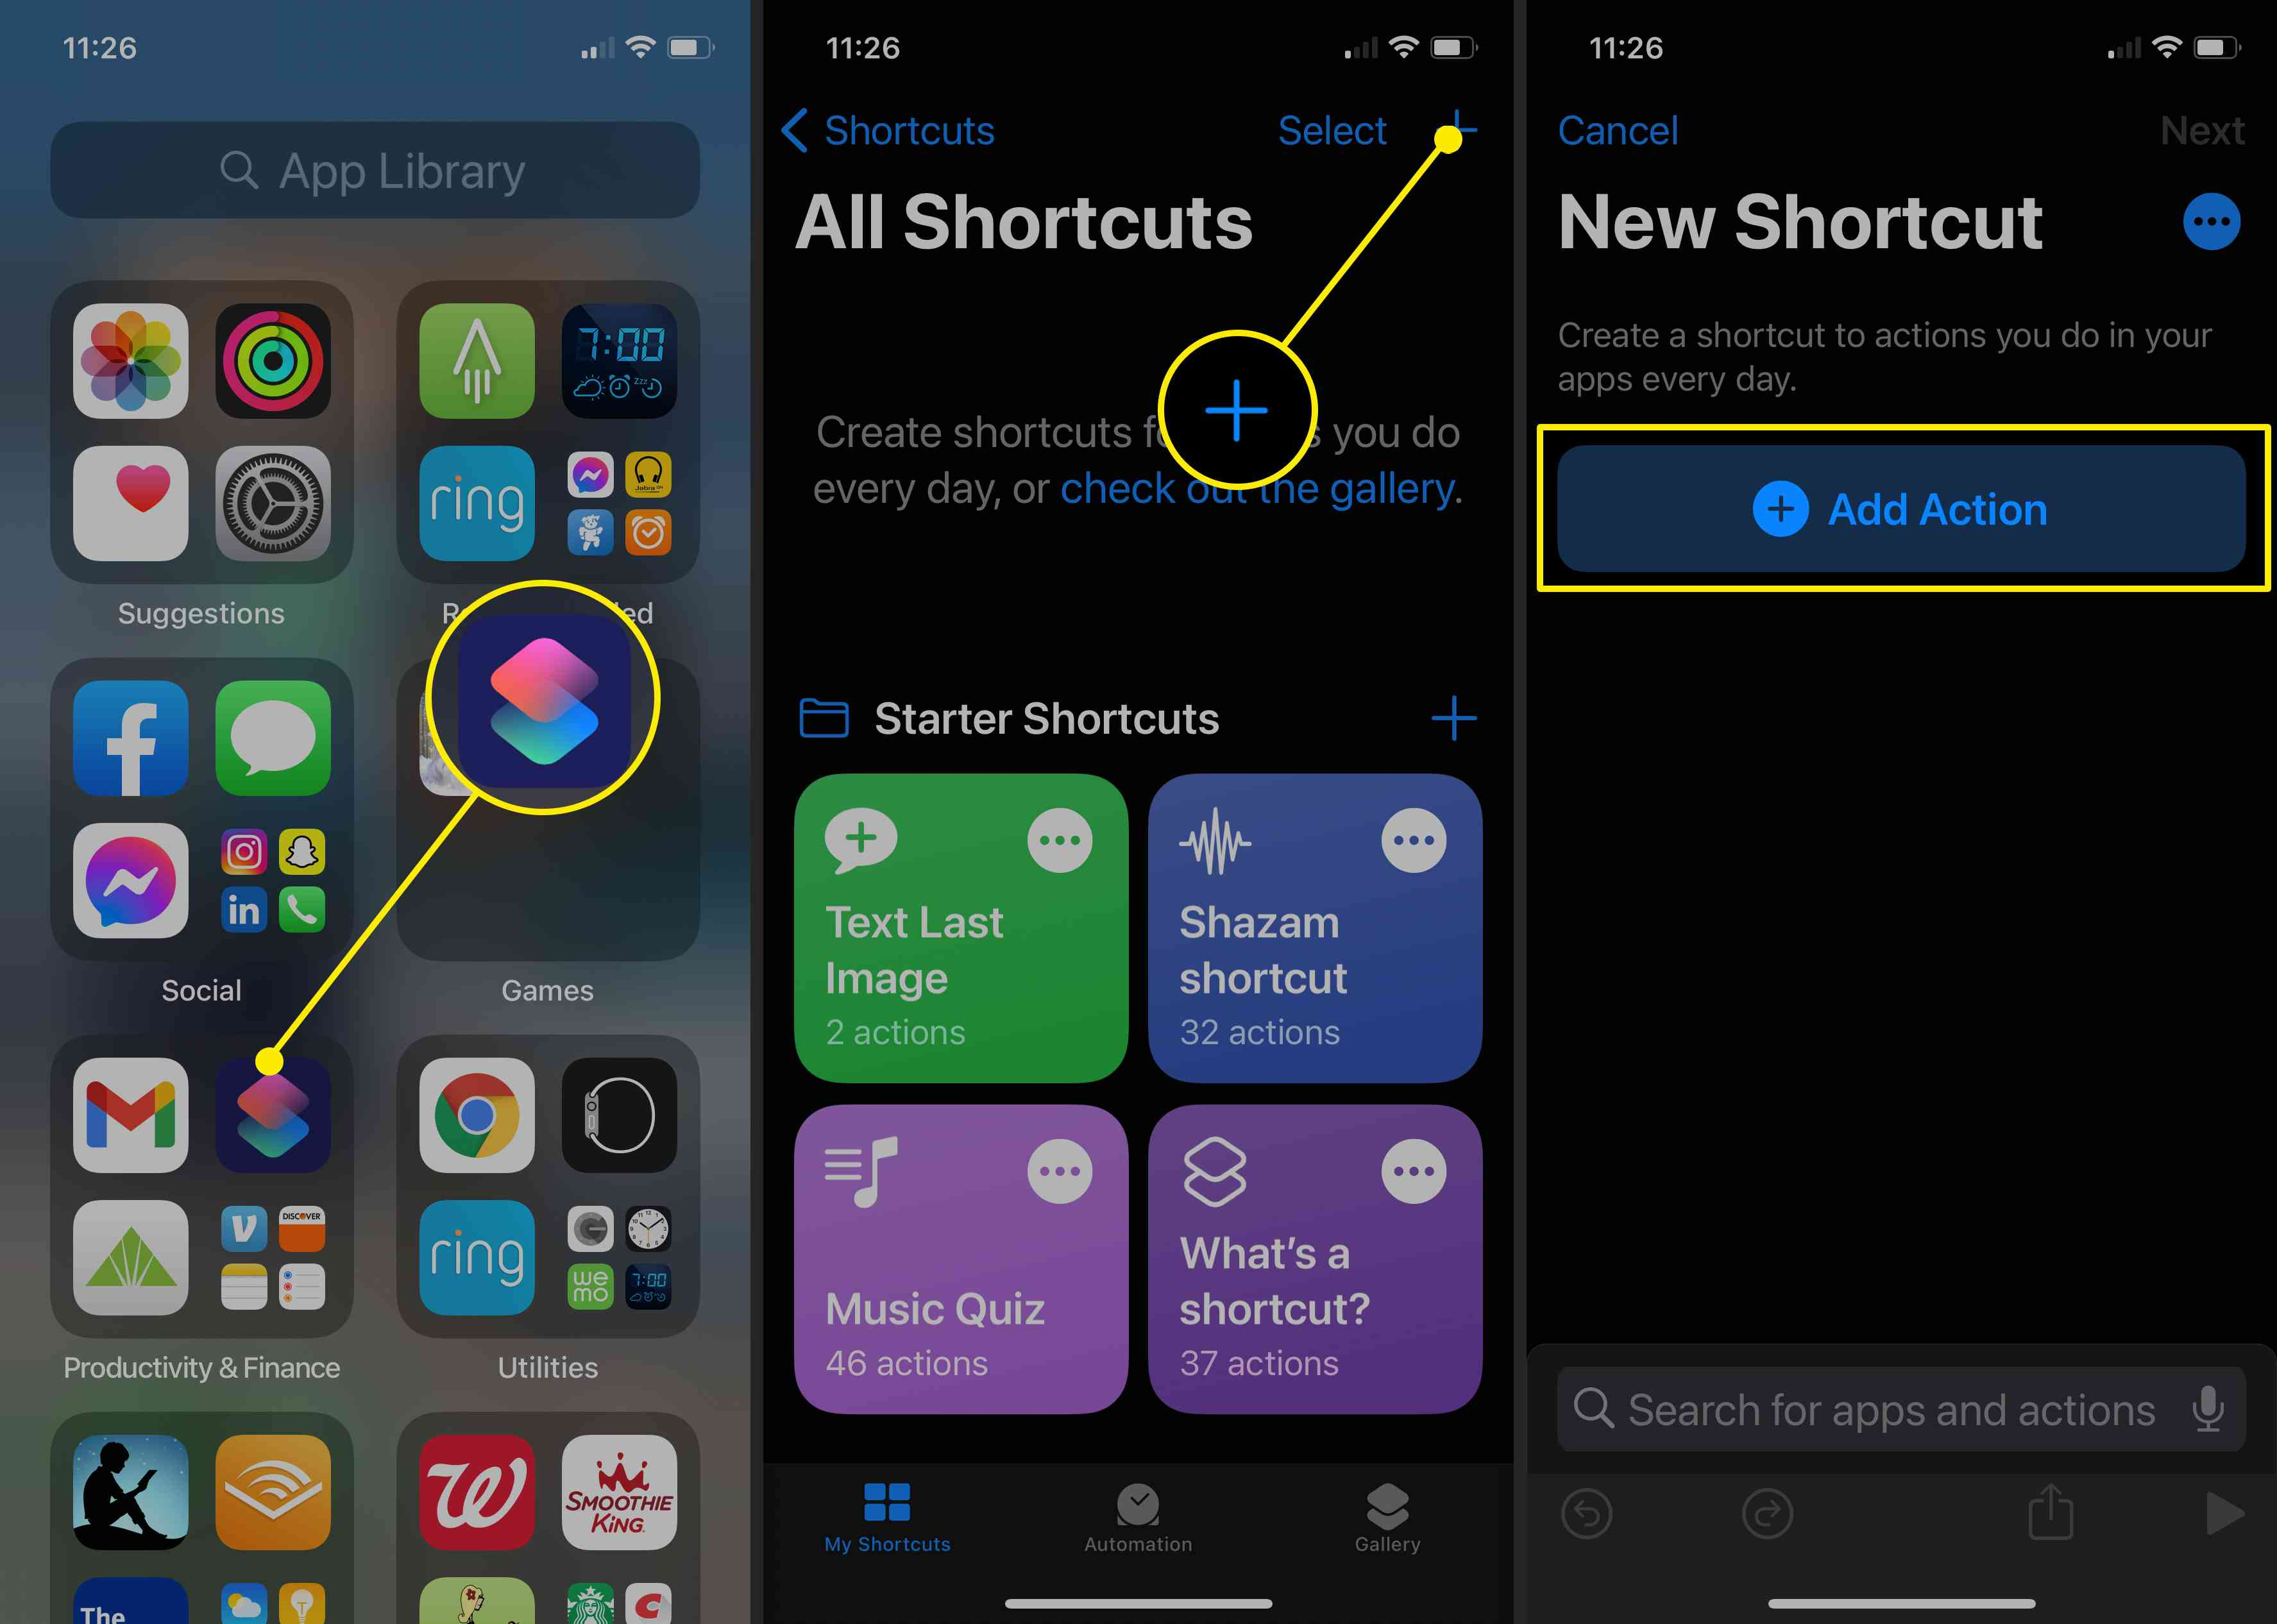 Screenshots of how to start creating a new shortcut in iOS 14 to customize app icons.